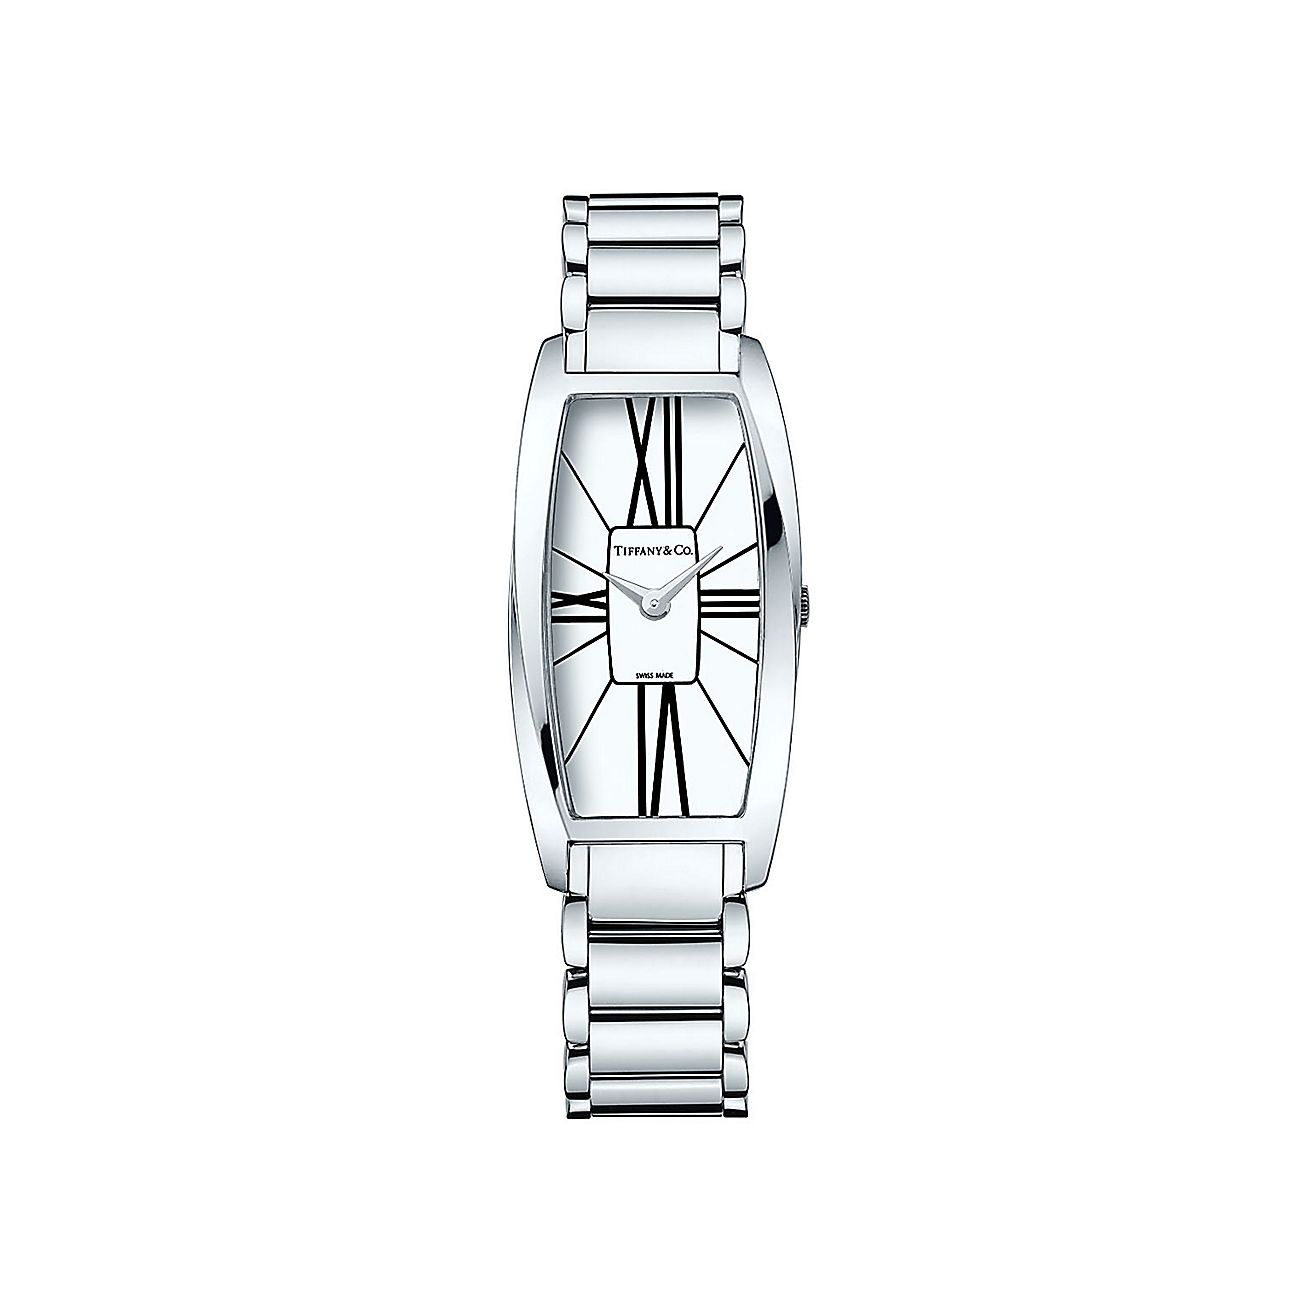 Tiffany Gemea®:Watch